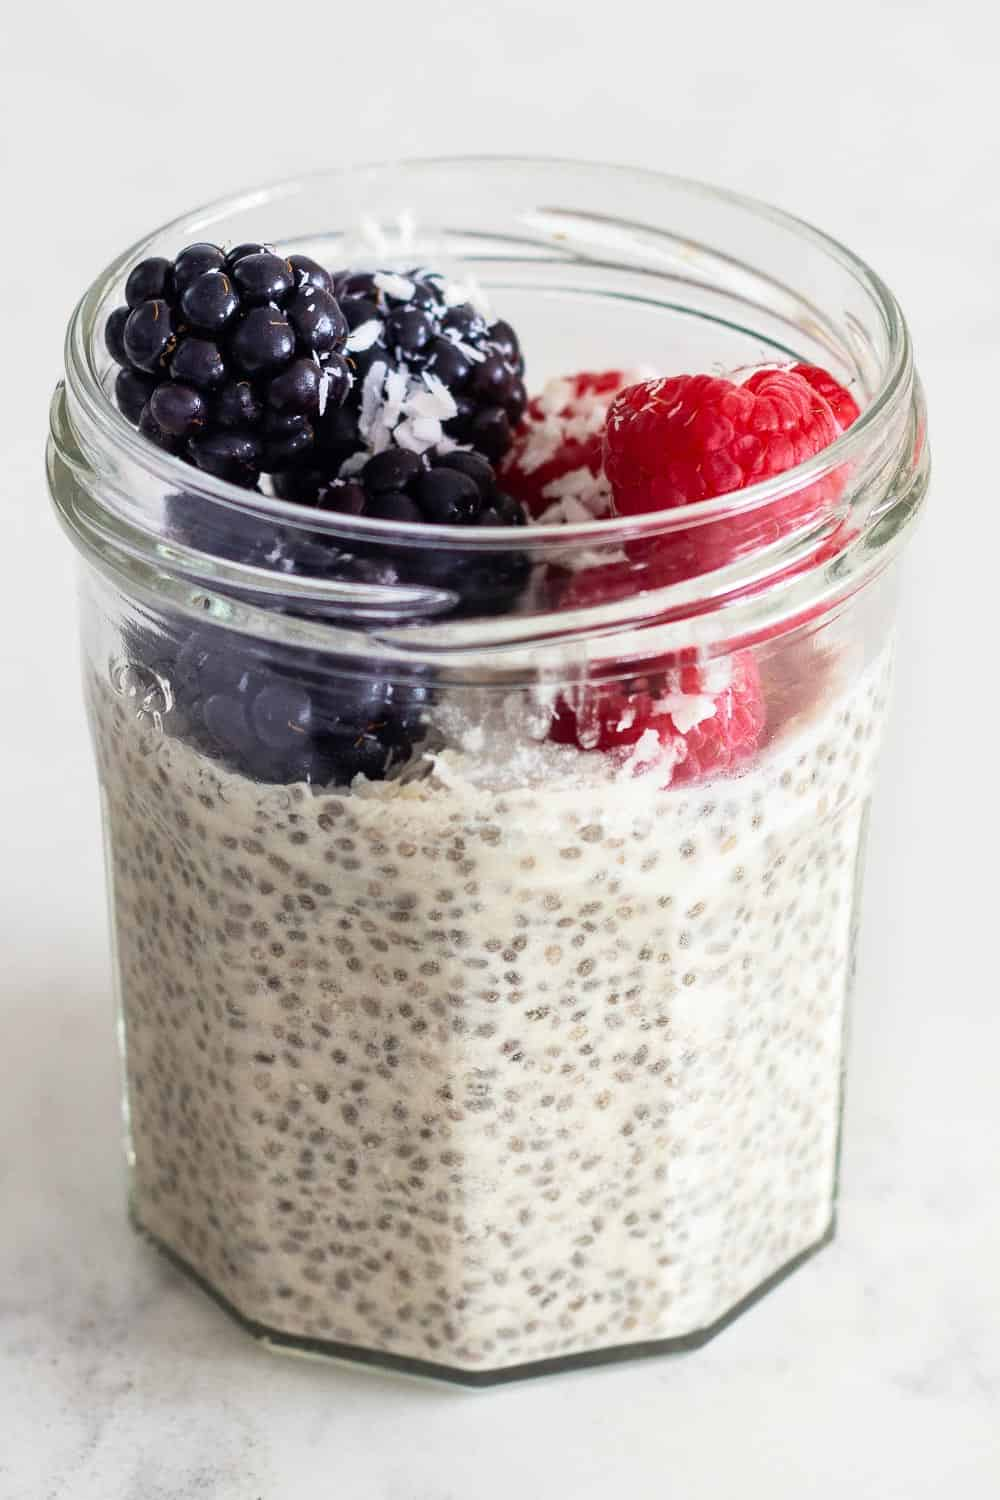 Coconut milk Chia Seed Pudding in a glass jar topped with blackberries and raspberries.